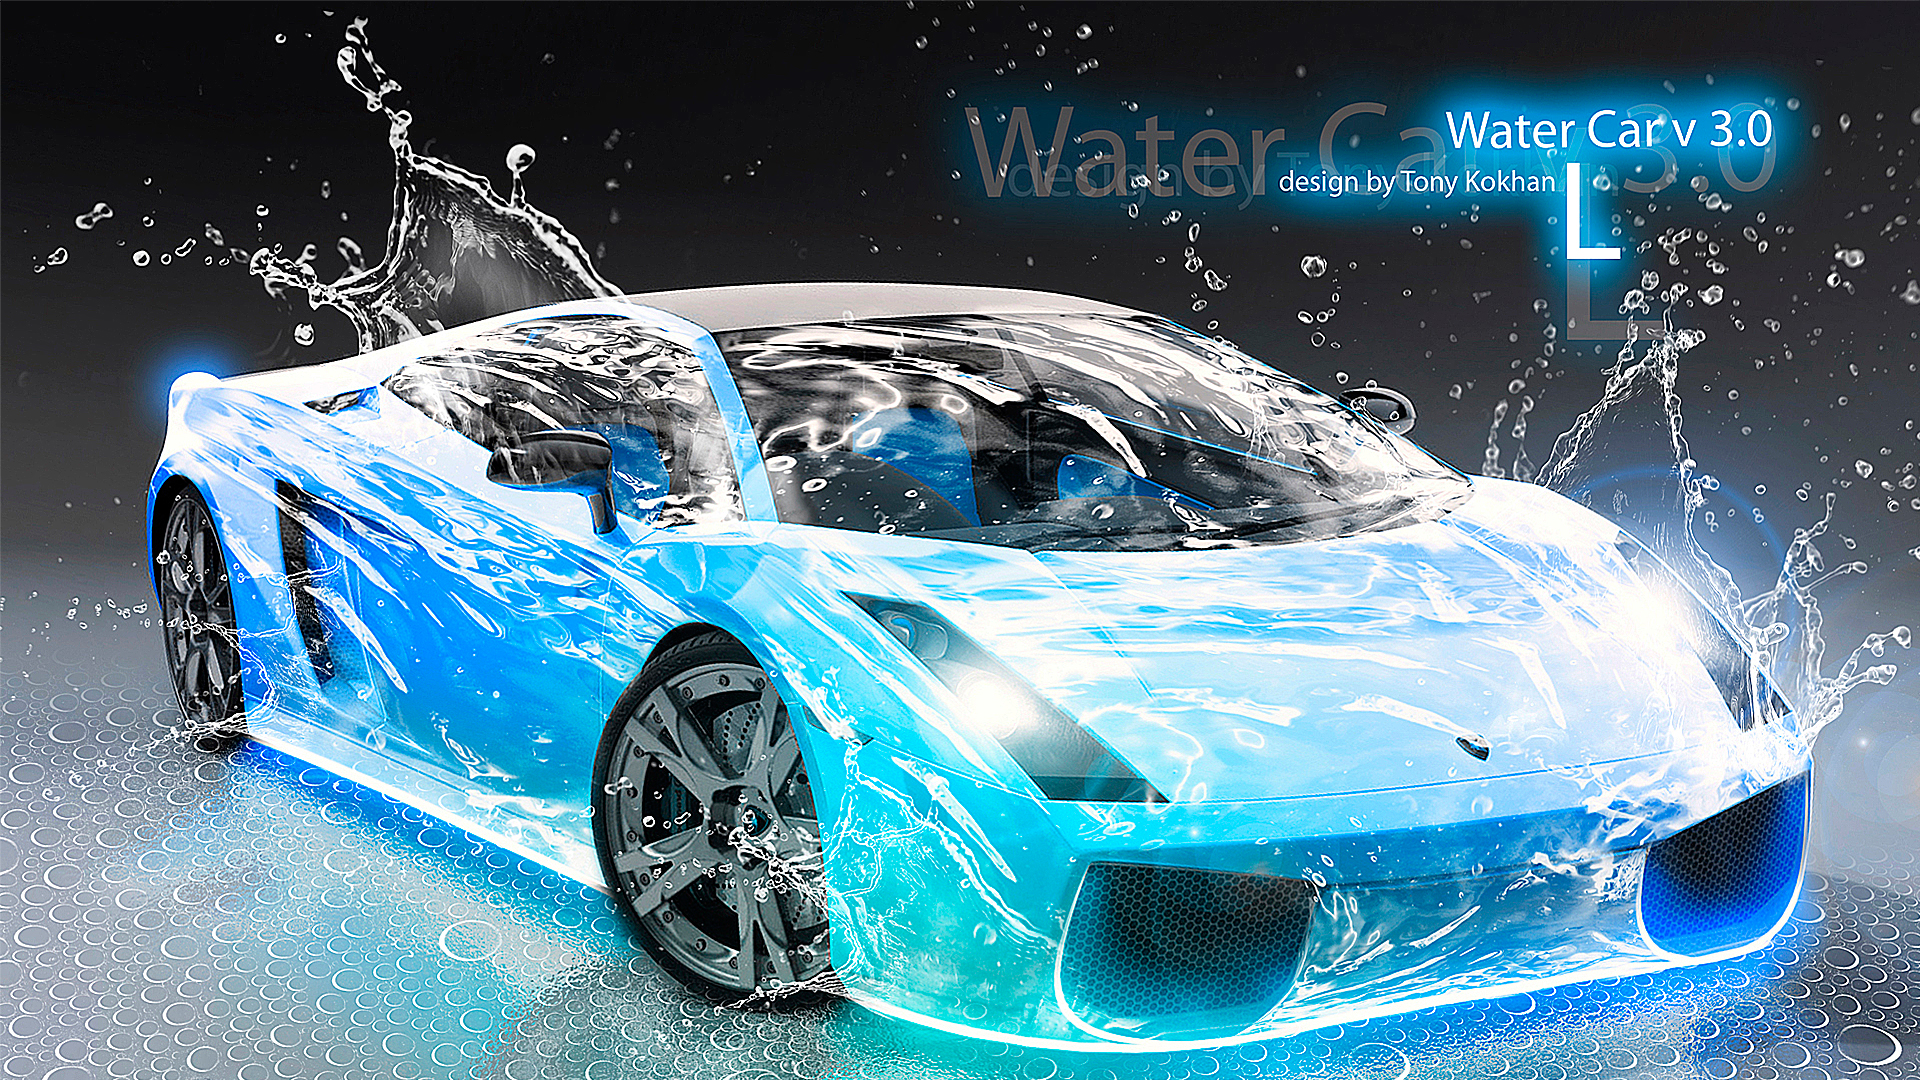 Attrayant Lamborghini Gallardo Water Car Blue 2012 HD Wallpapers